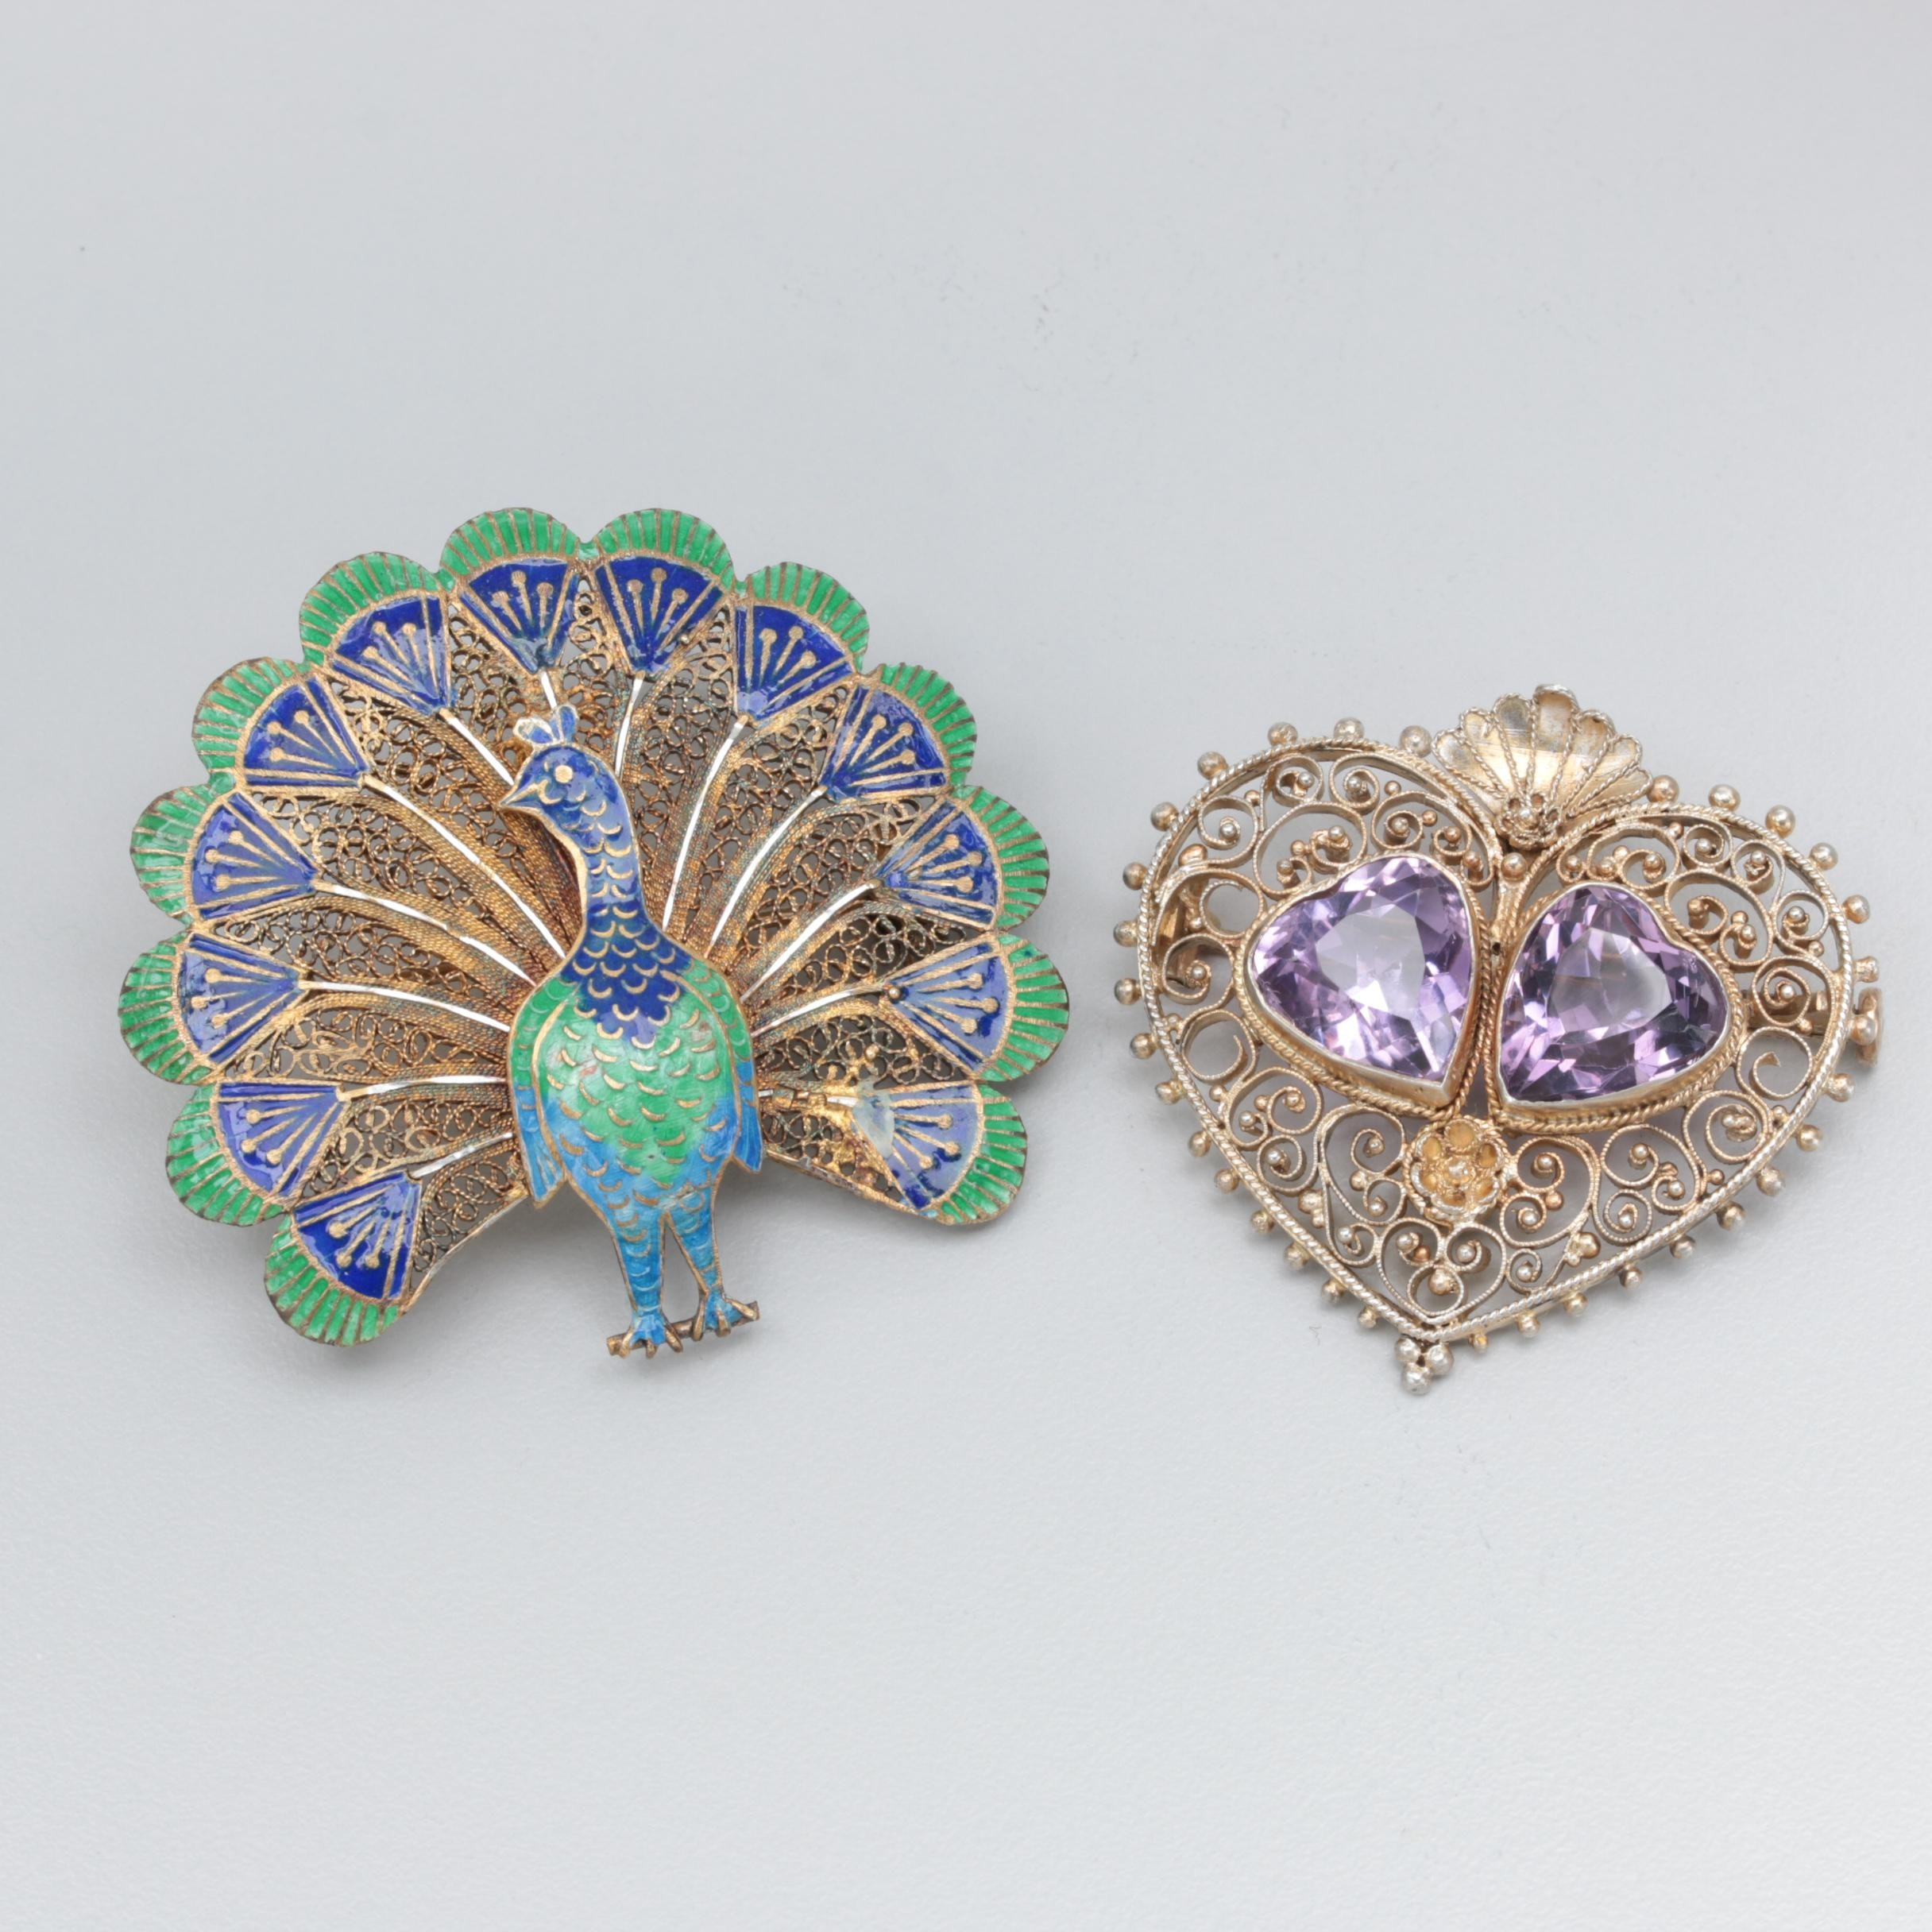 Vintage 800 Silver Amethyst and Portuguese Sterling Enameled Peacock Brooches